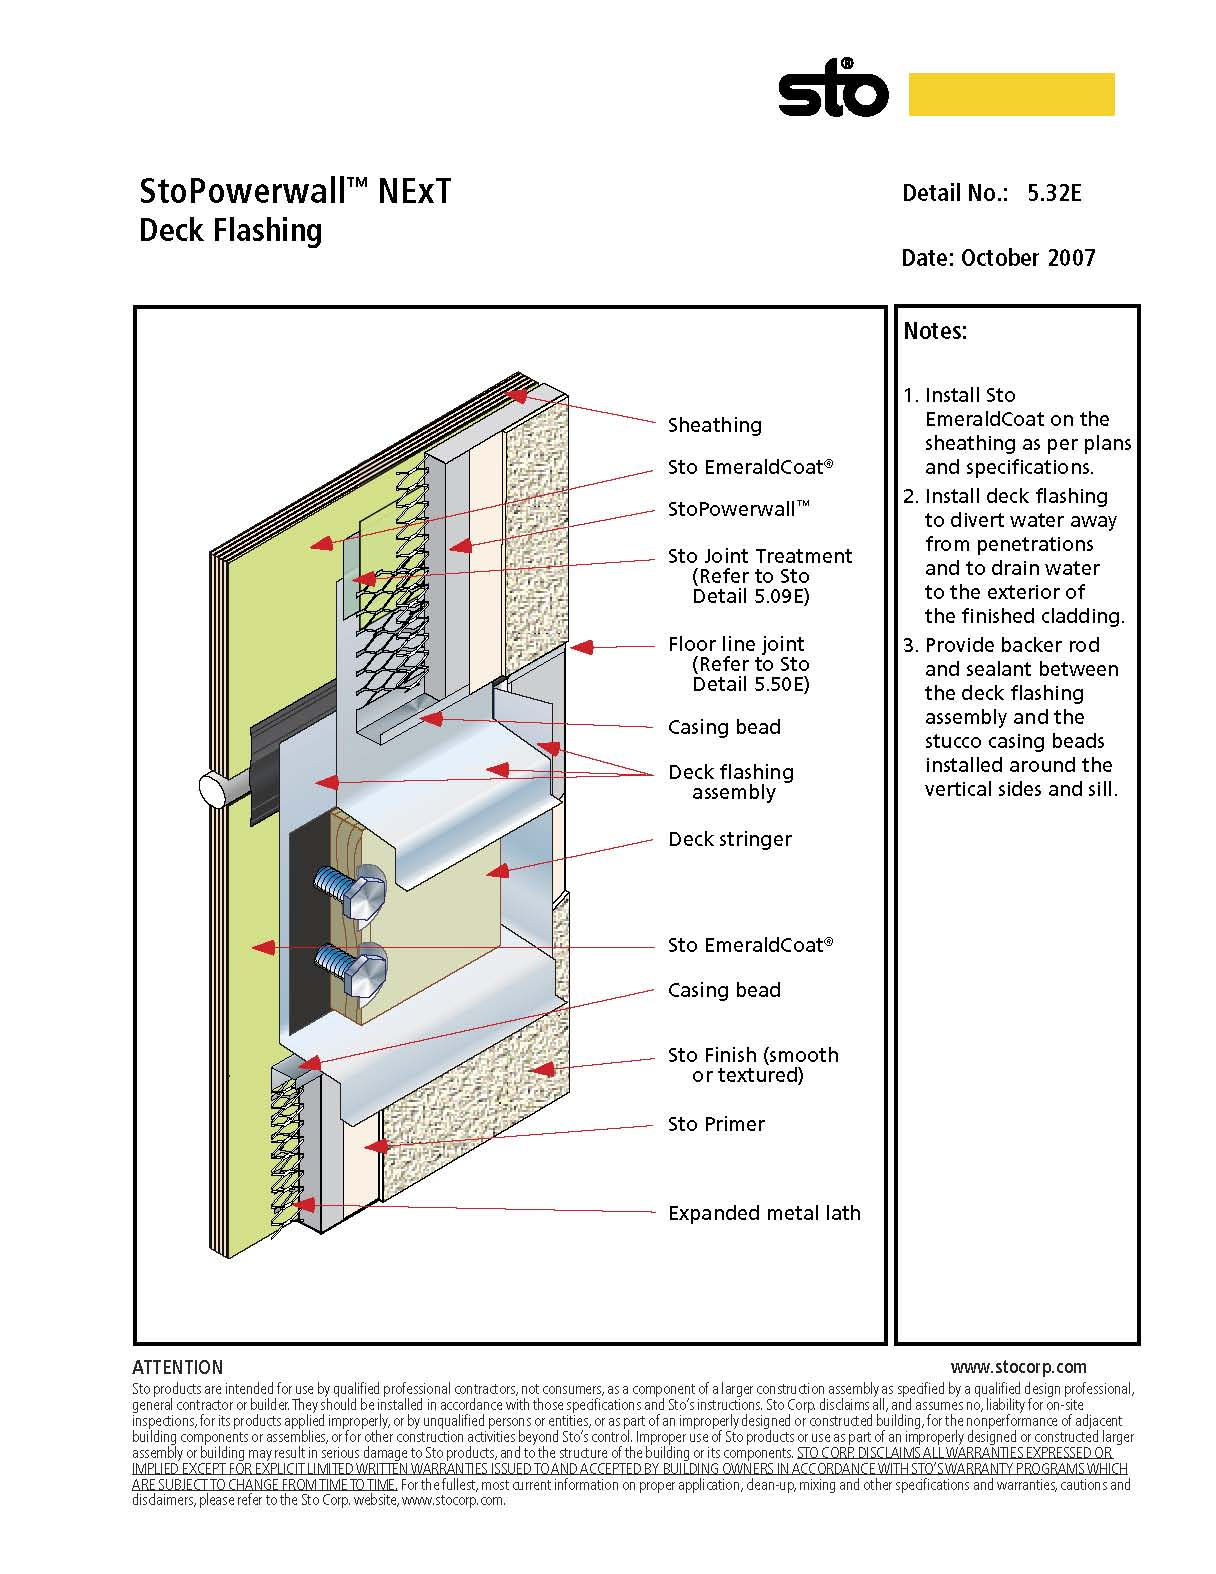 I need to install flashing under the ledger board on an existing ...